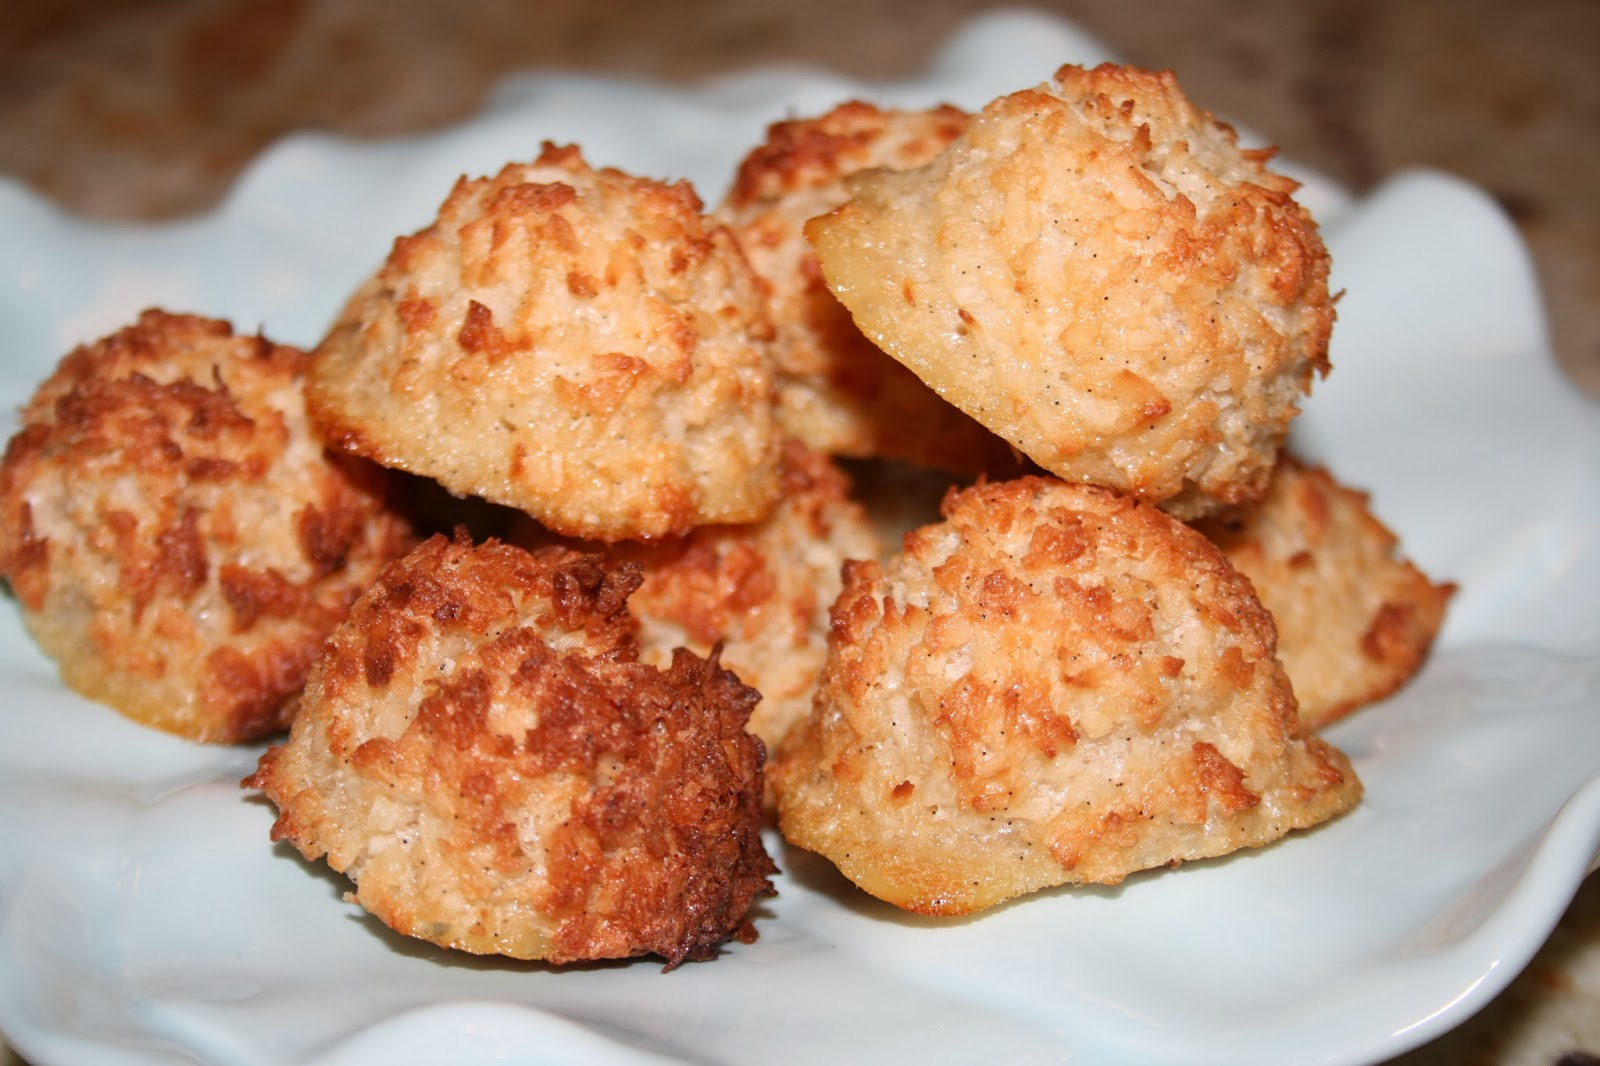 ... | Paleo Recipes, meal plans, and shopping lists: Coconut Macaroons